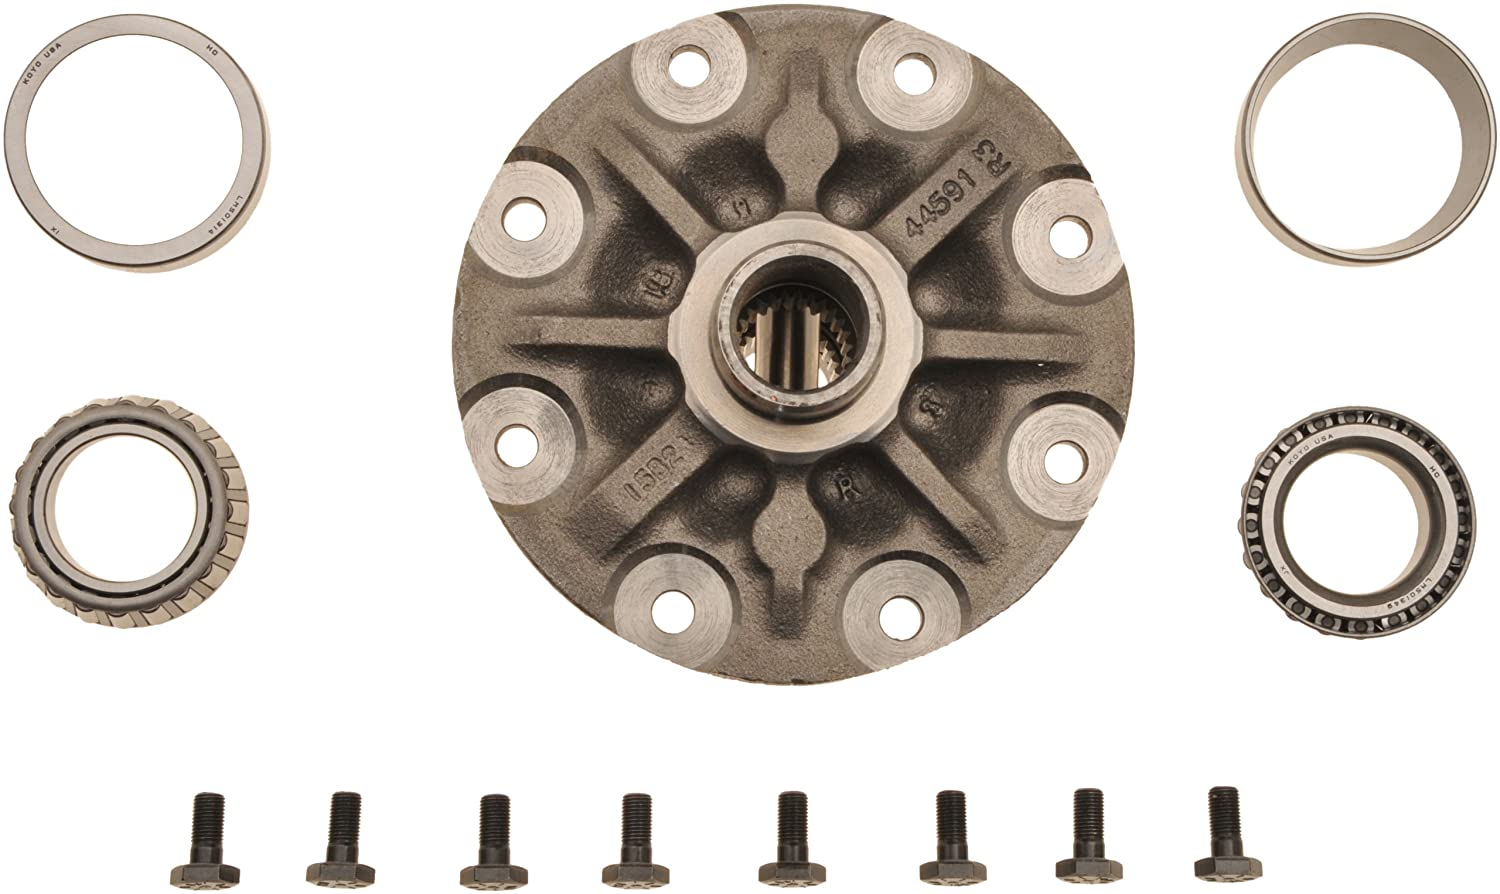 Spicer 75054X Differential Case Assembly Kit